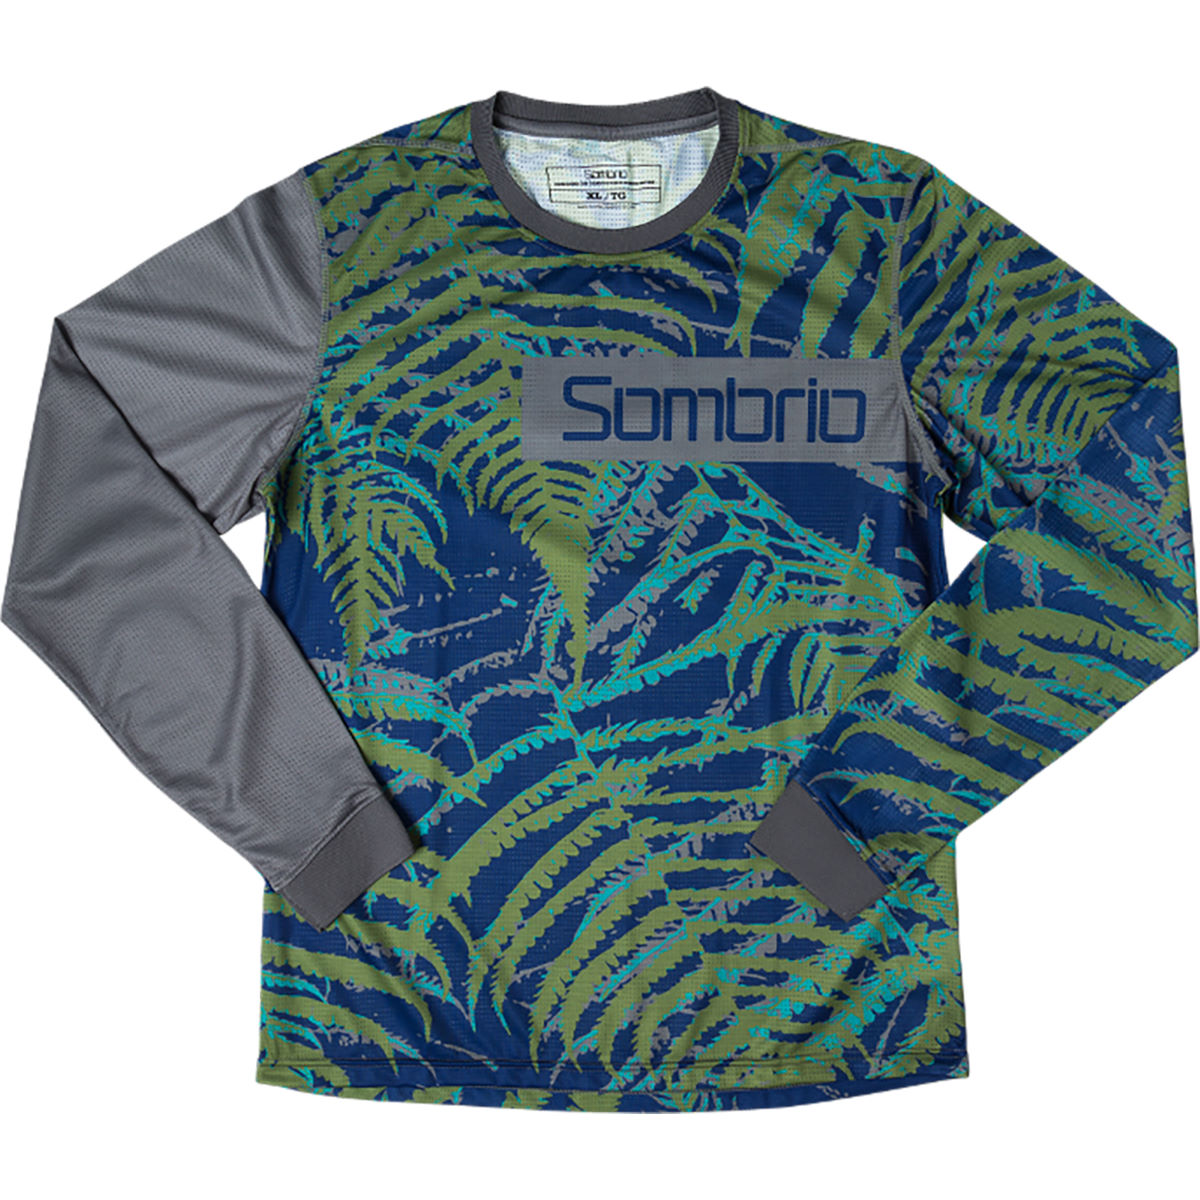 Sombrio Grappler Race Jersey (2016) - Maillots